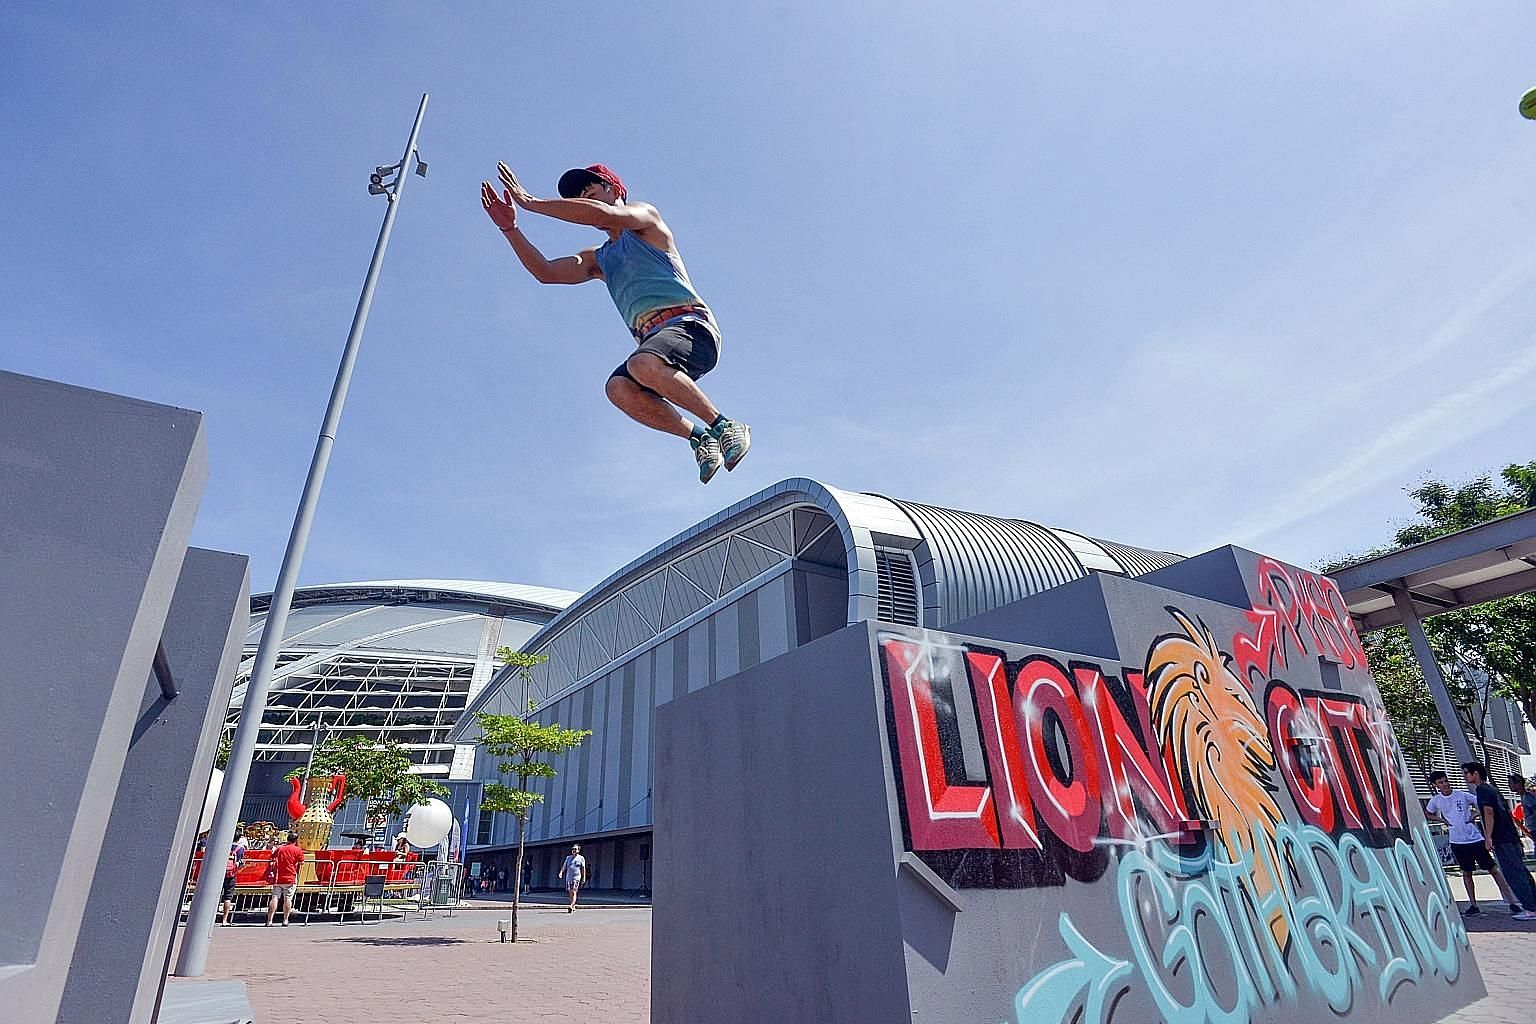 A parkour enthusiast clearing an obstacle at the Lion City Gathering. A competition featuring professional parkour artists will be held today.